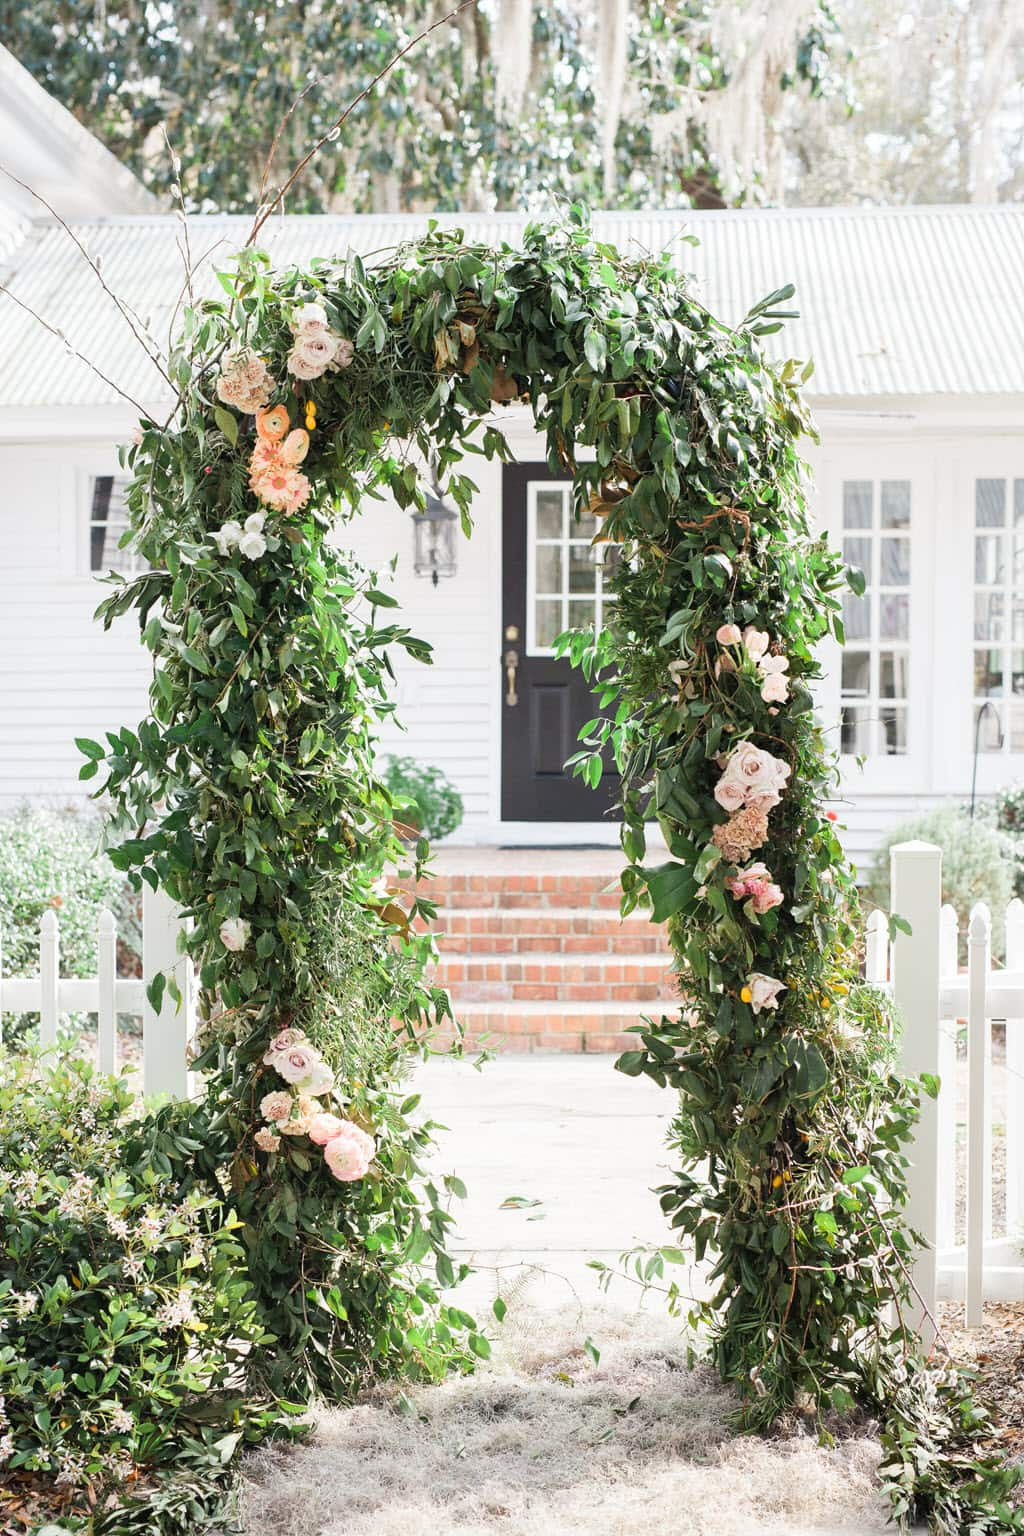 smilax arbor for weddings, events, or photo backdrops